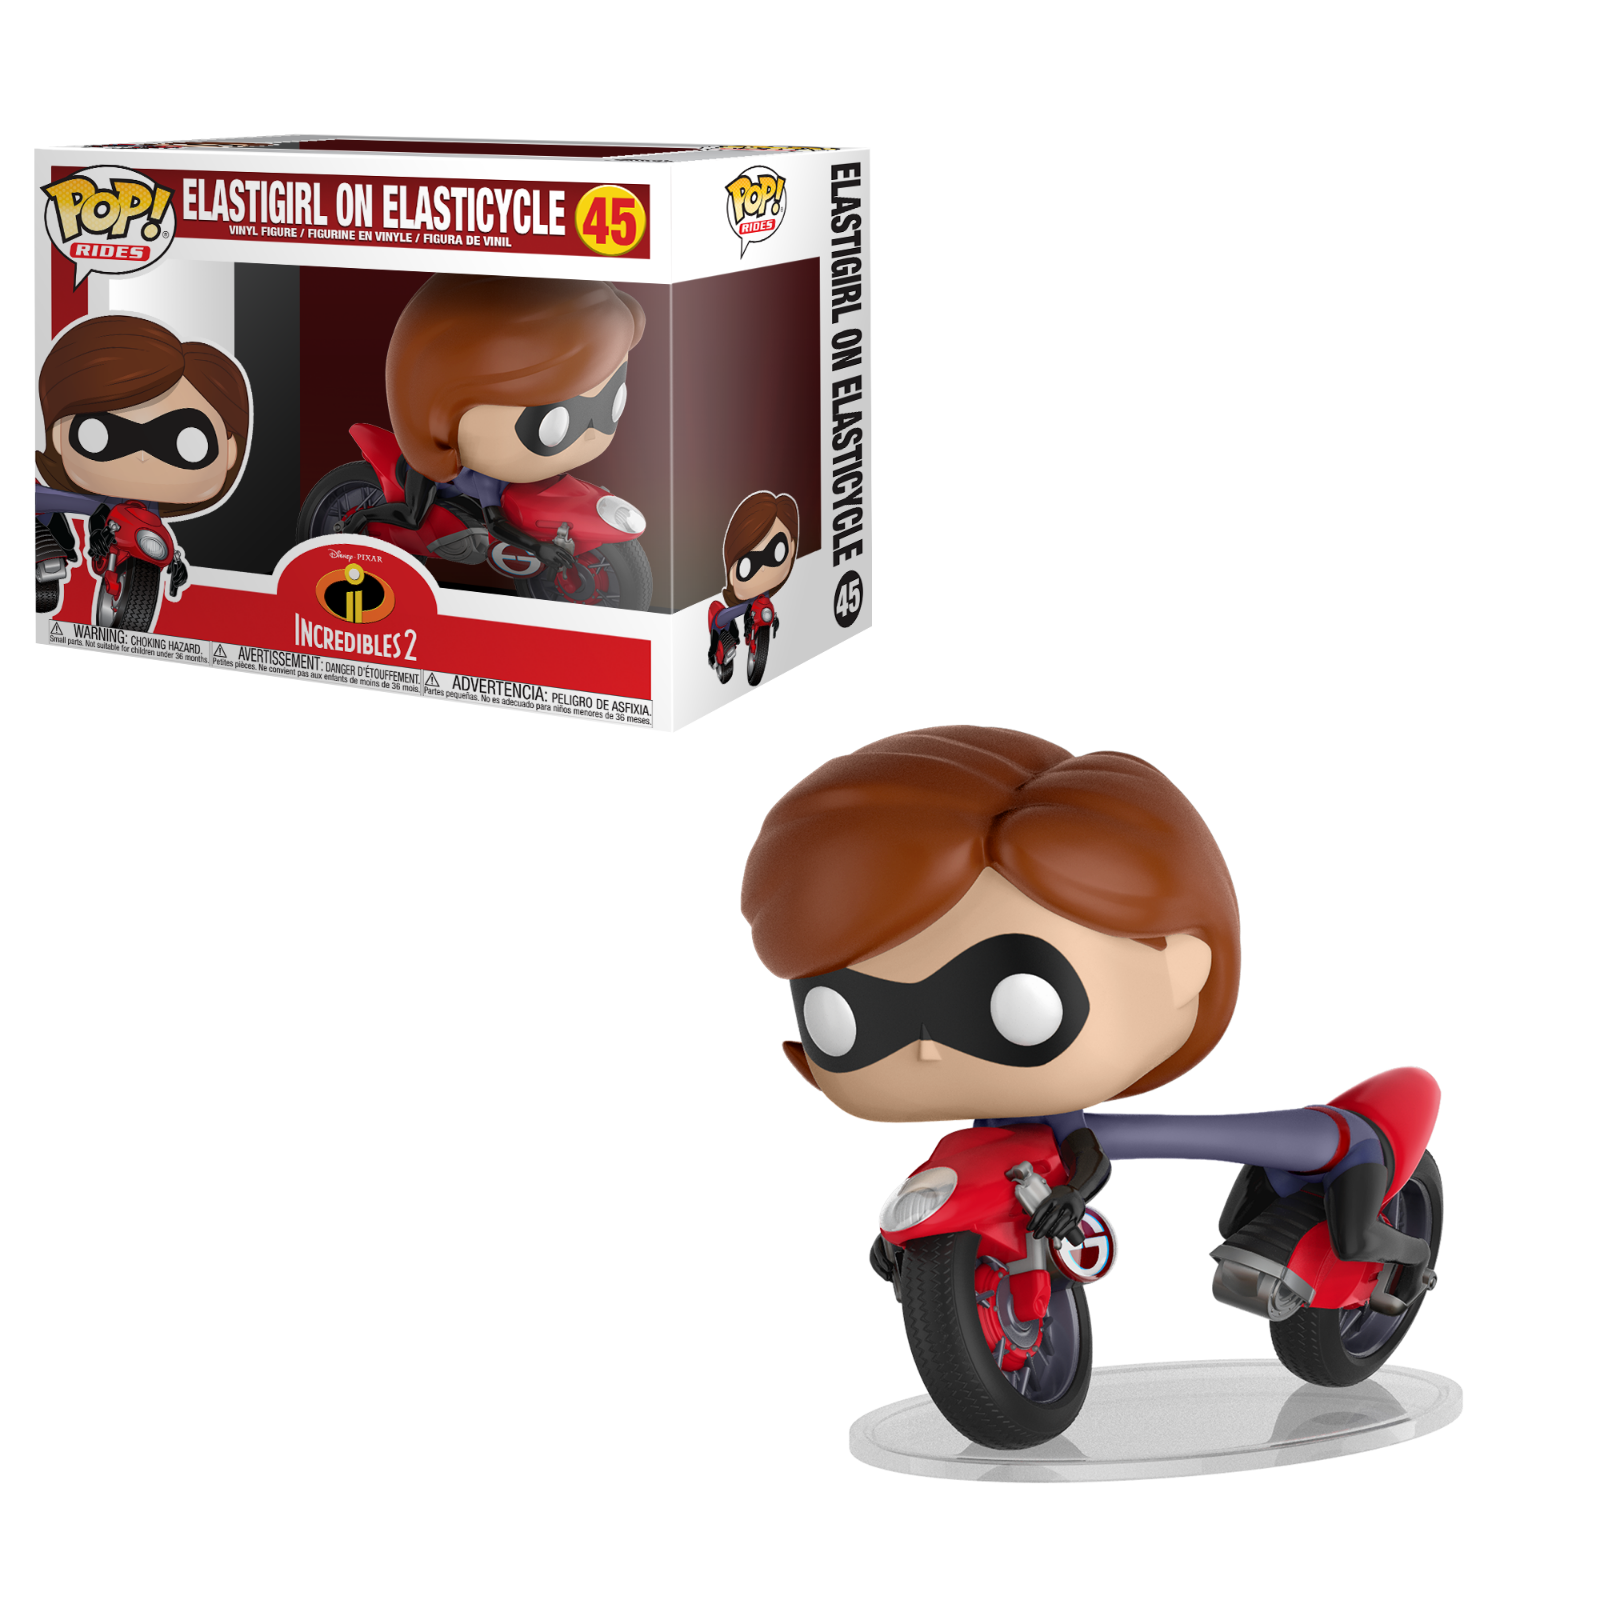 Funko pop - fahrten - incrotibles 2 - elastigirl auf elasticycle 45